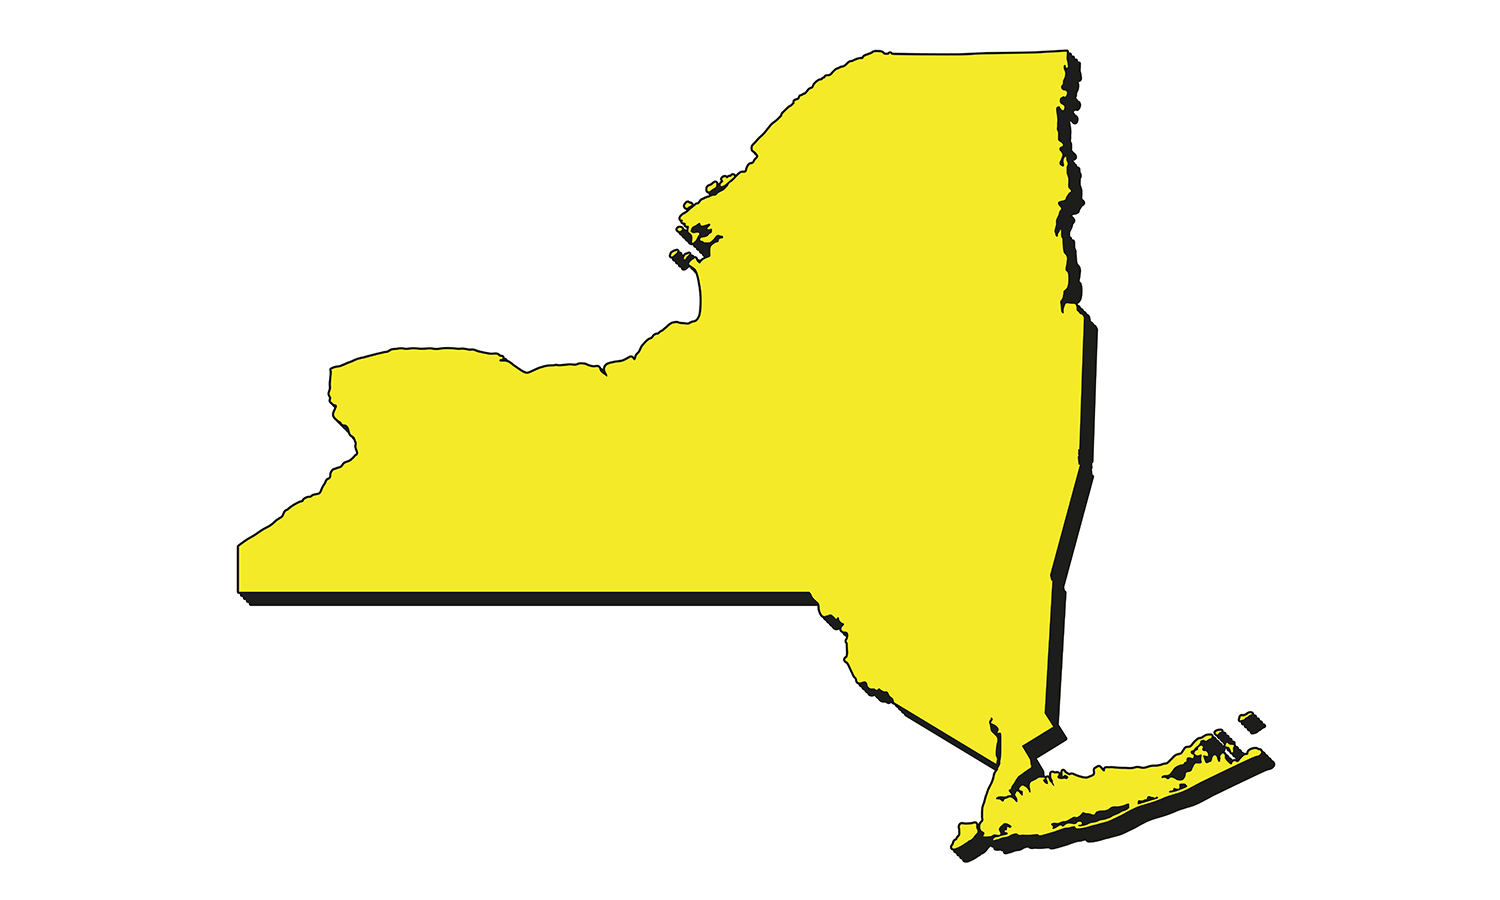 NewYork_Petitions_Pave-Yellow-01.jpg